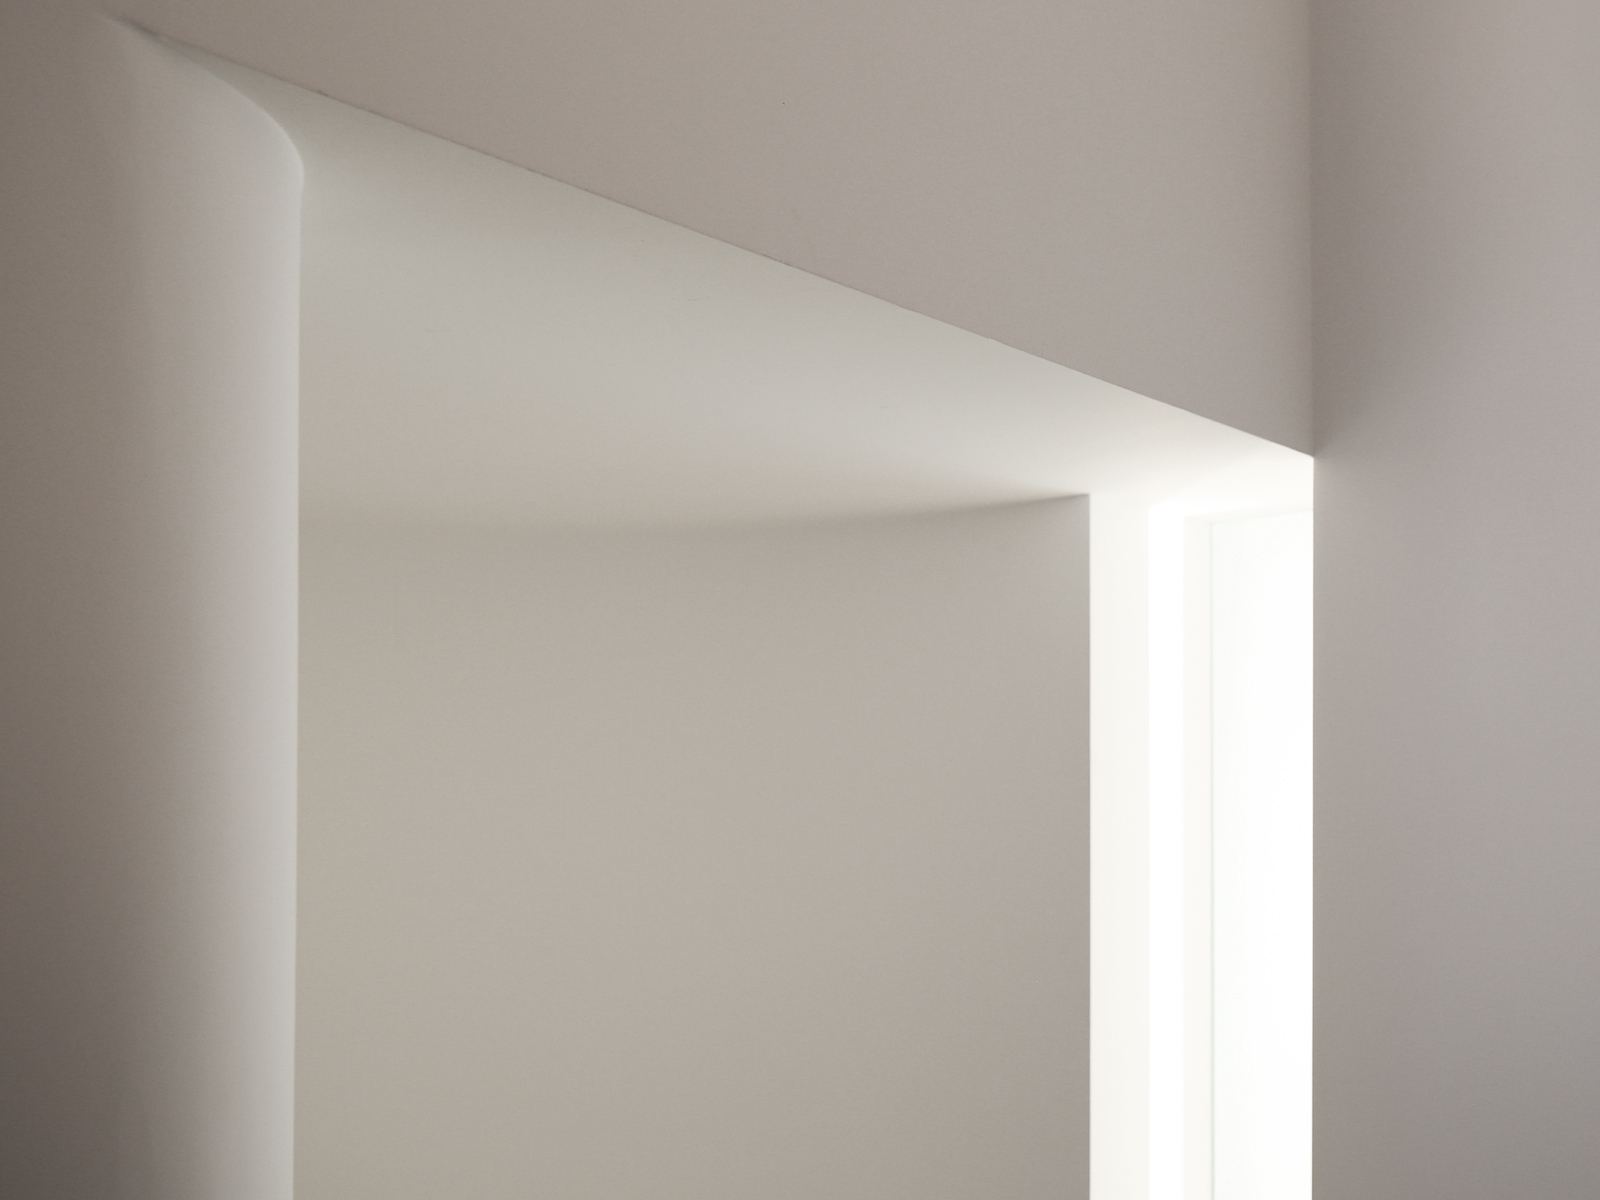 light slot window on curved walls